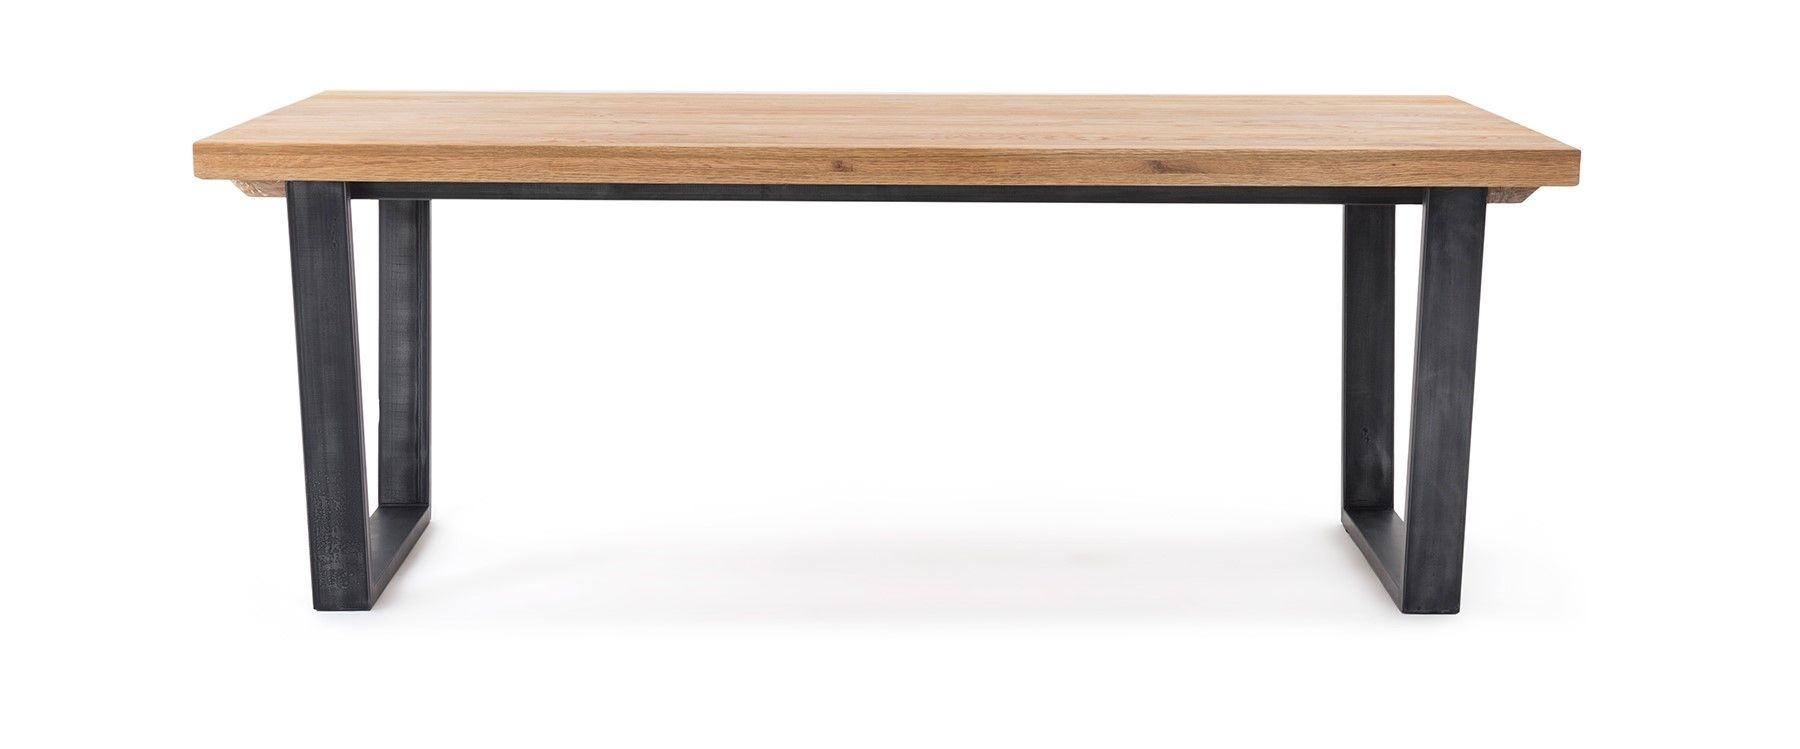 Calia dining table ez living furniture dublin cork kildare buy calia dining table available from ez living dublin cork kildare waterford a great selection of furnishings for your home dzzzfo